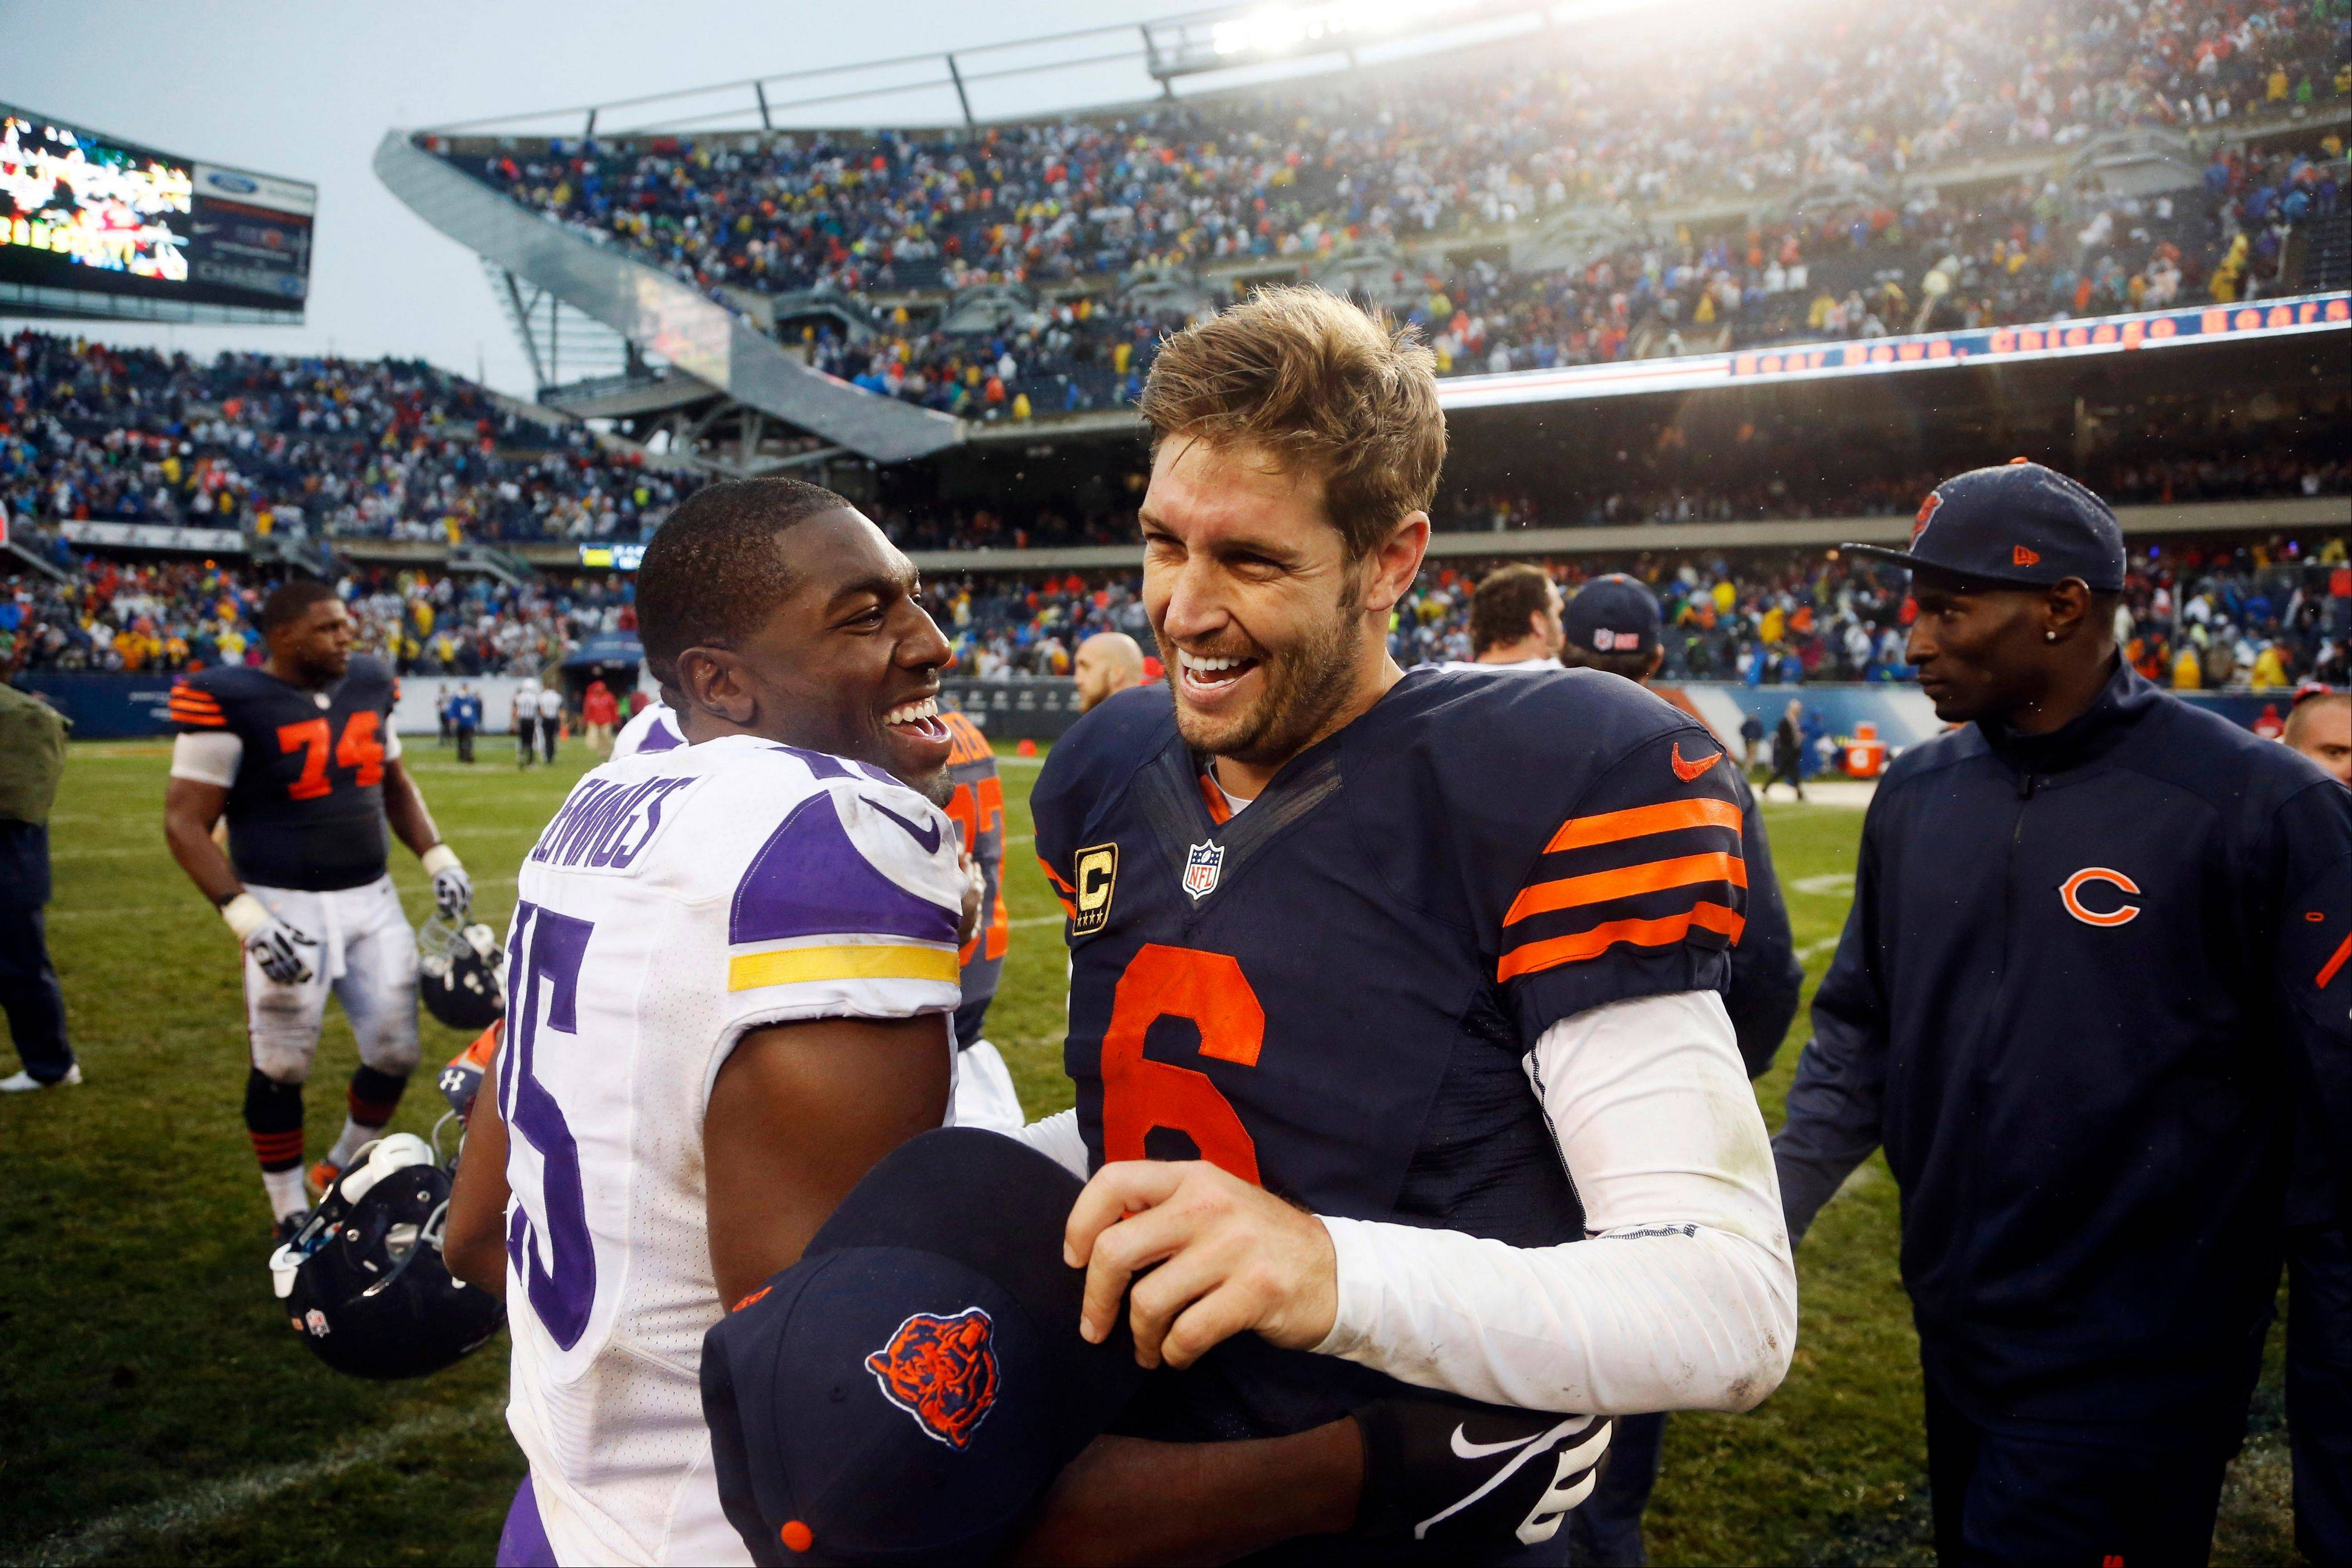 Minnesota Vikings wide receiver Greg Jennings (15) and Jay Cutler (6) laugh after the Bears beat Minnesota last Sunday.